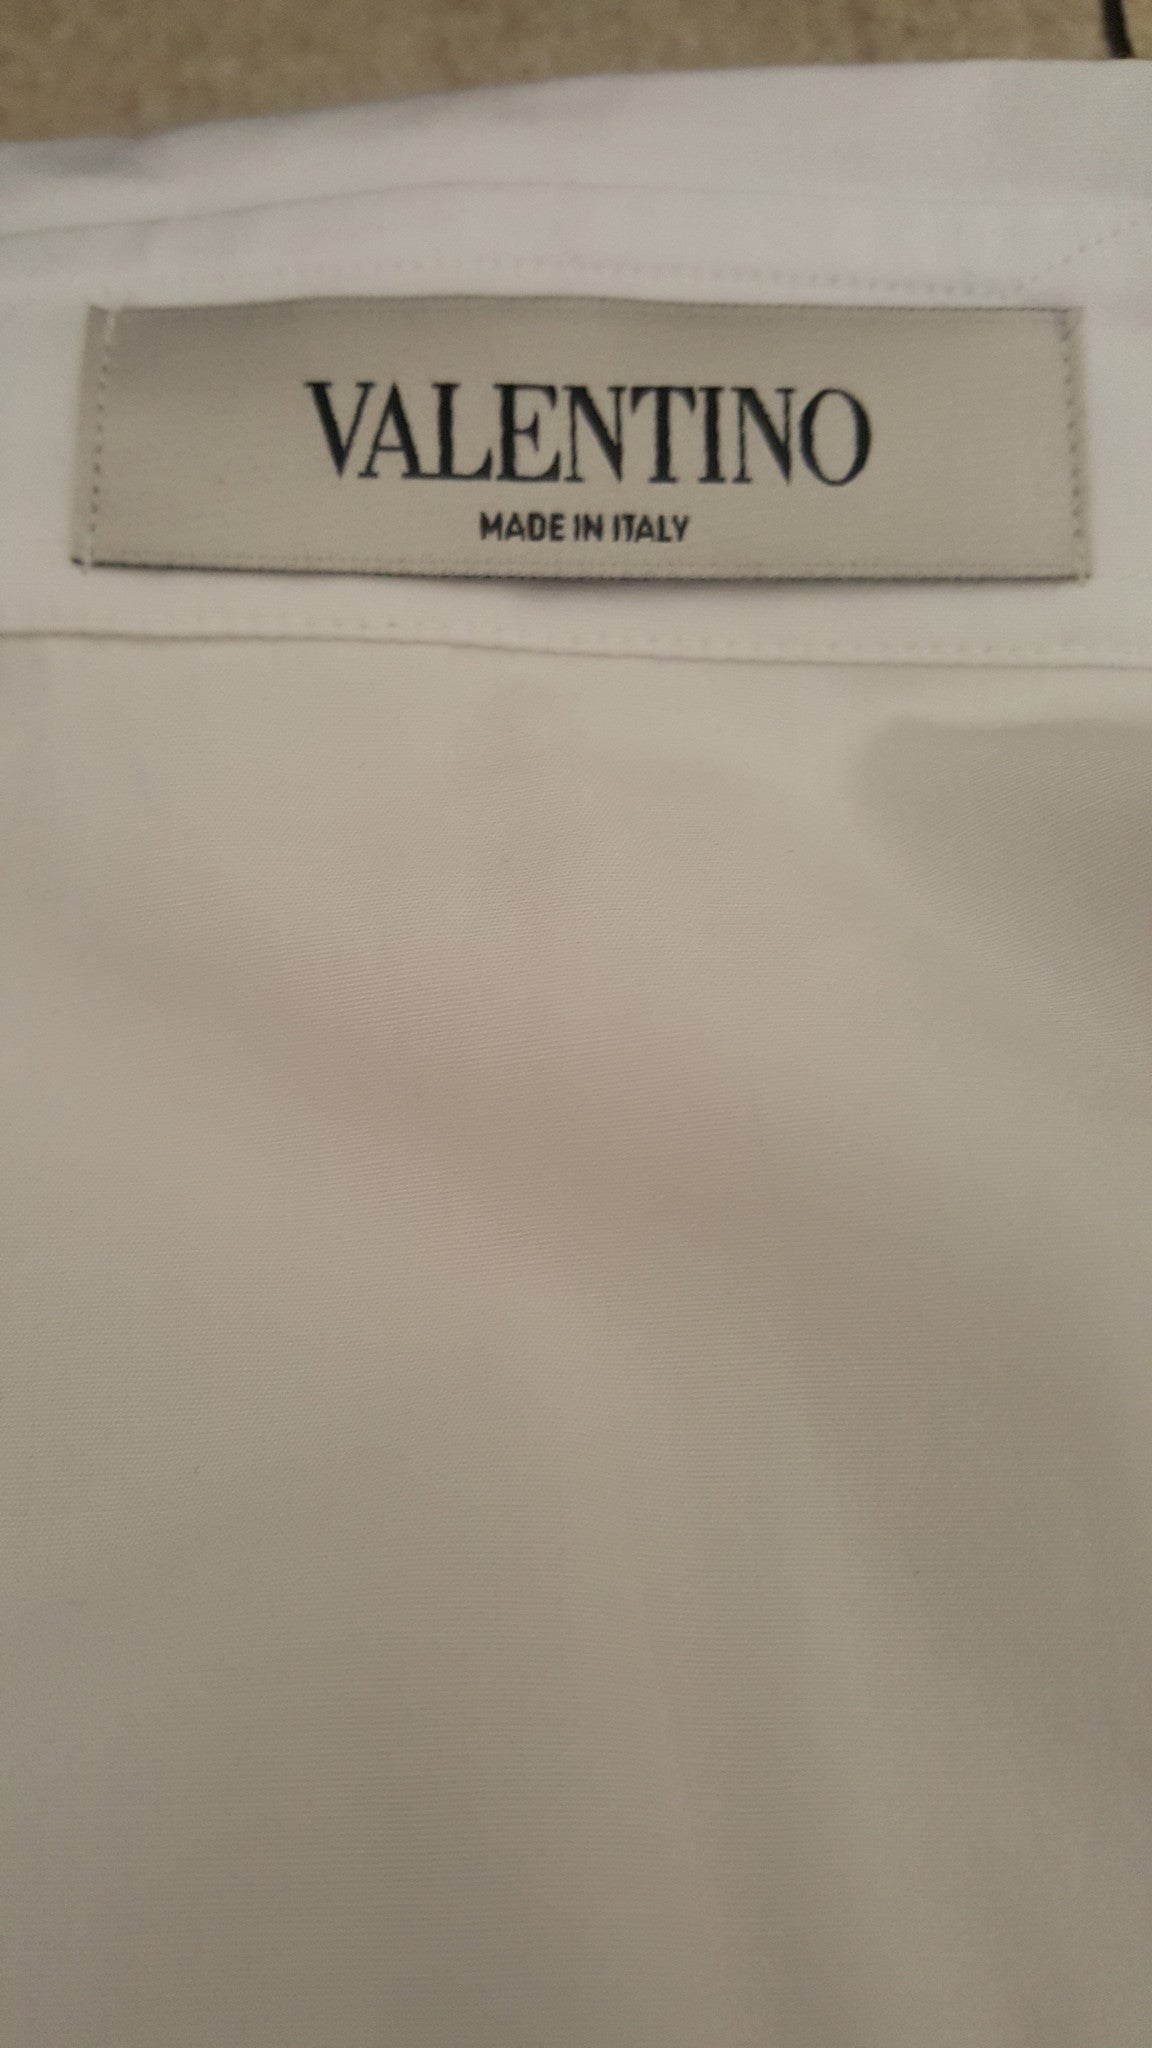 VALENTINO FAUX LEATHER POPLIN SHIRT - SIZE 4